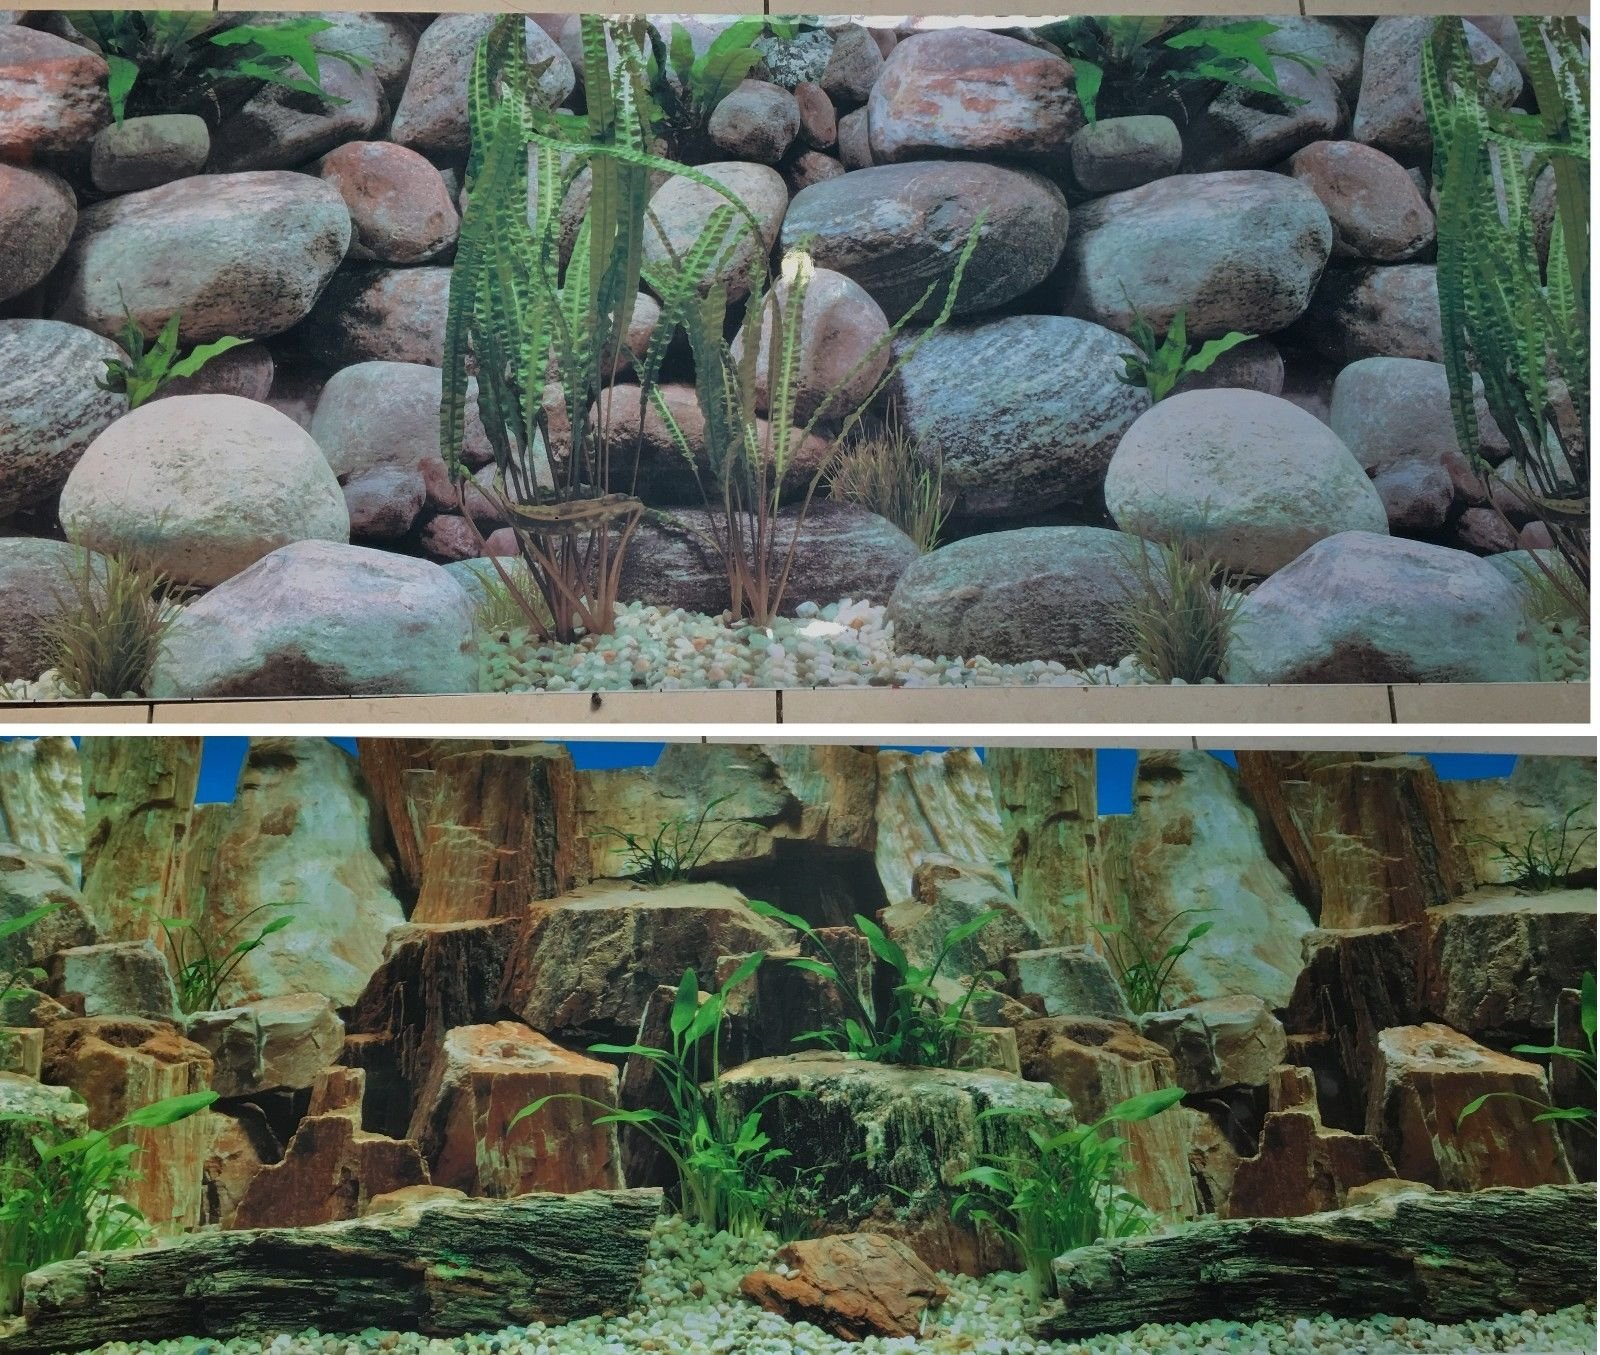 Karen Low 19 Inch Height Double Sided Aquarium Background Decorations Rocks and Stones (72''(L) x 19'' (H)) by Karen Low